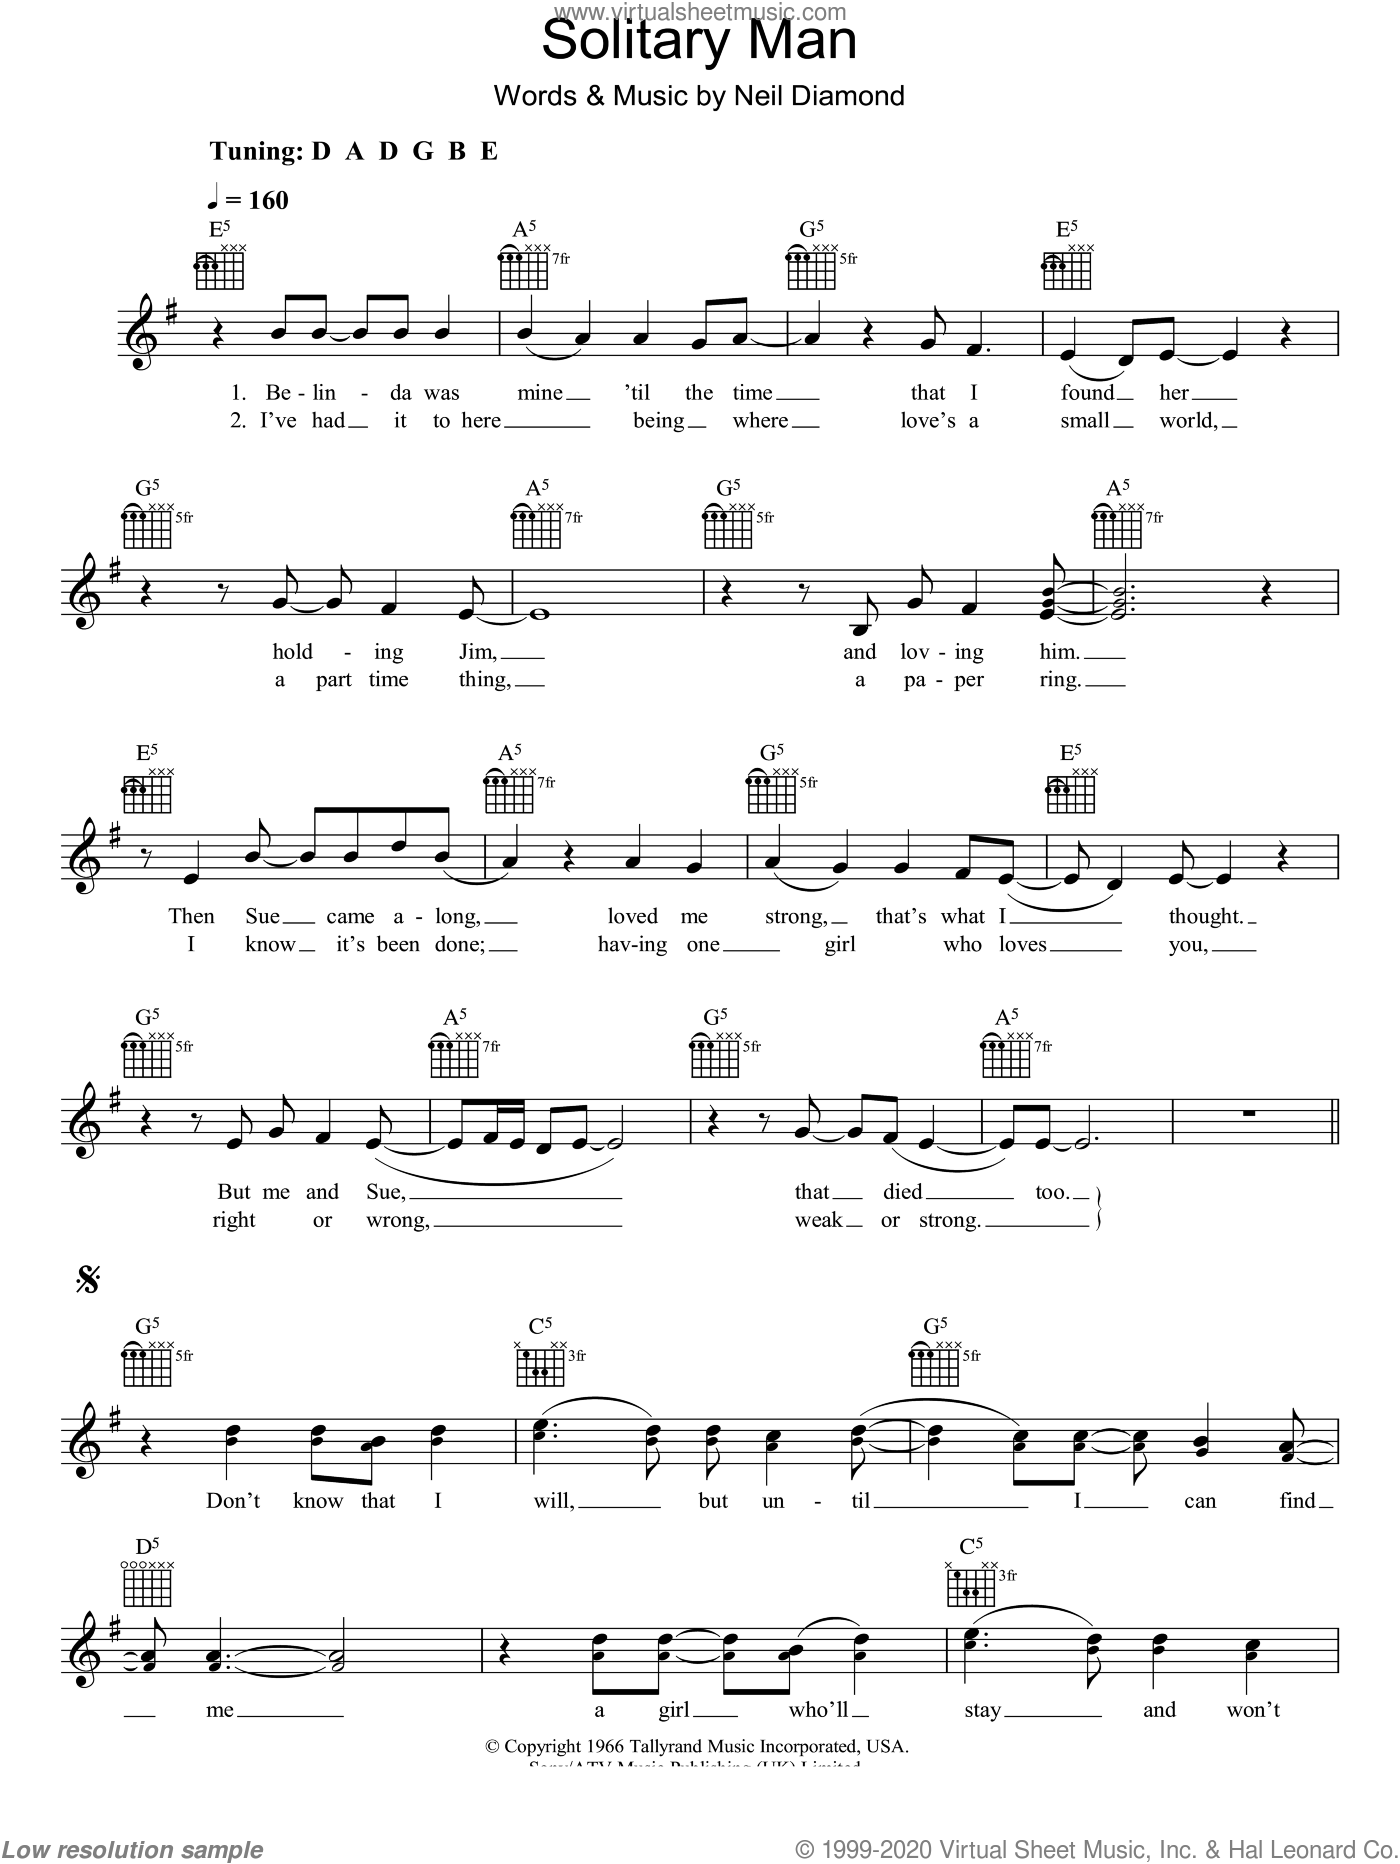 Solitary Man sheet music for voice and other instruments (fake book) by Neil Diamond, intermediate skill level